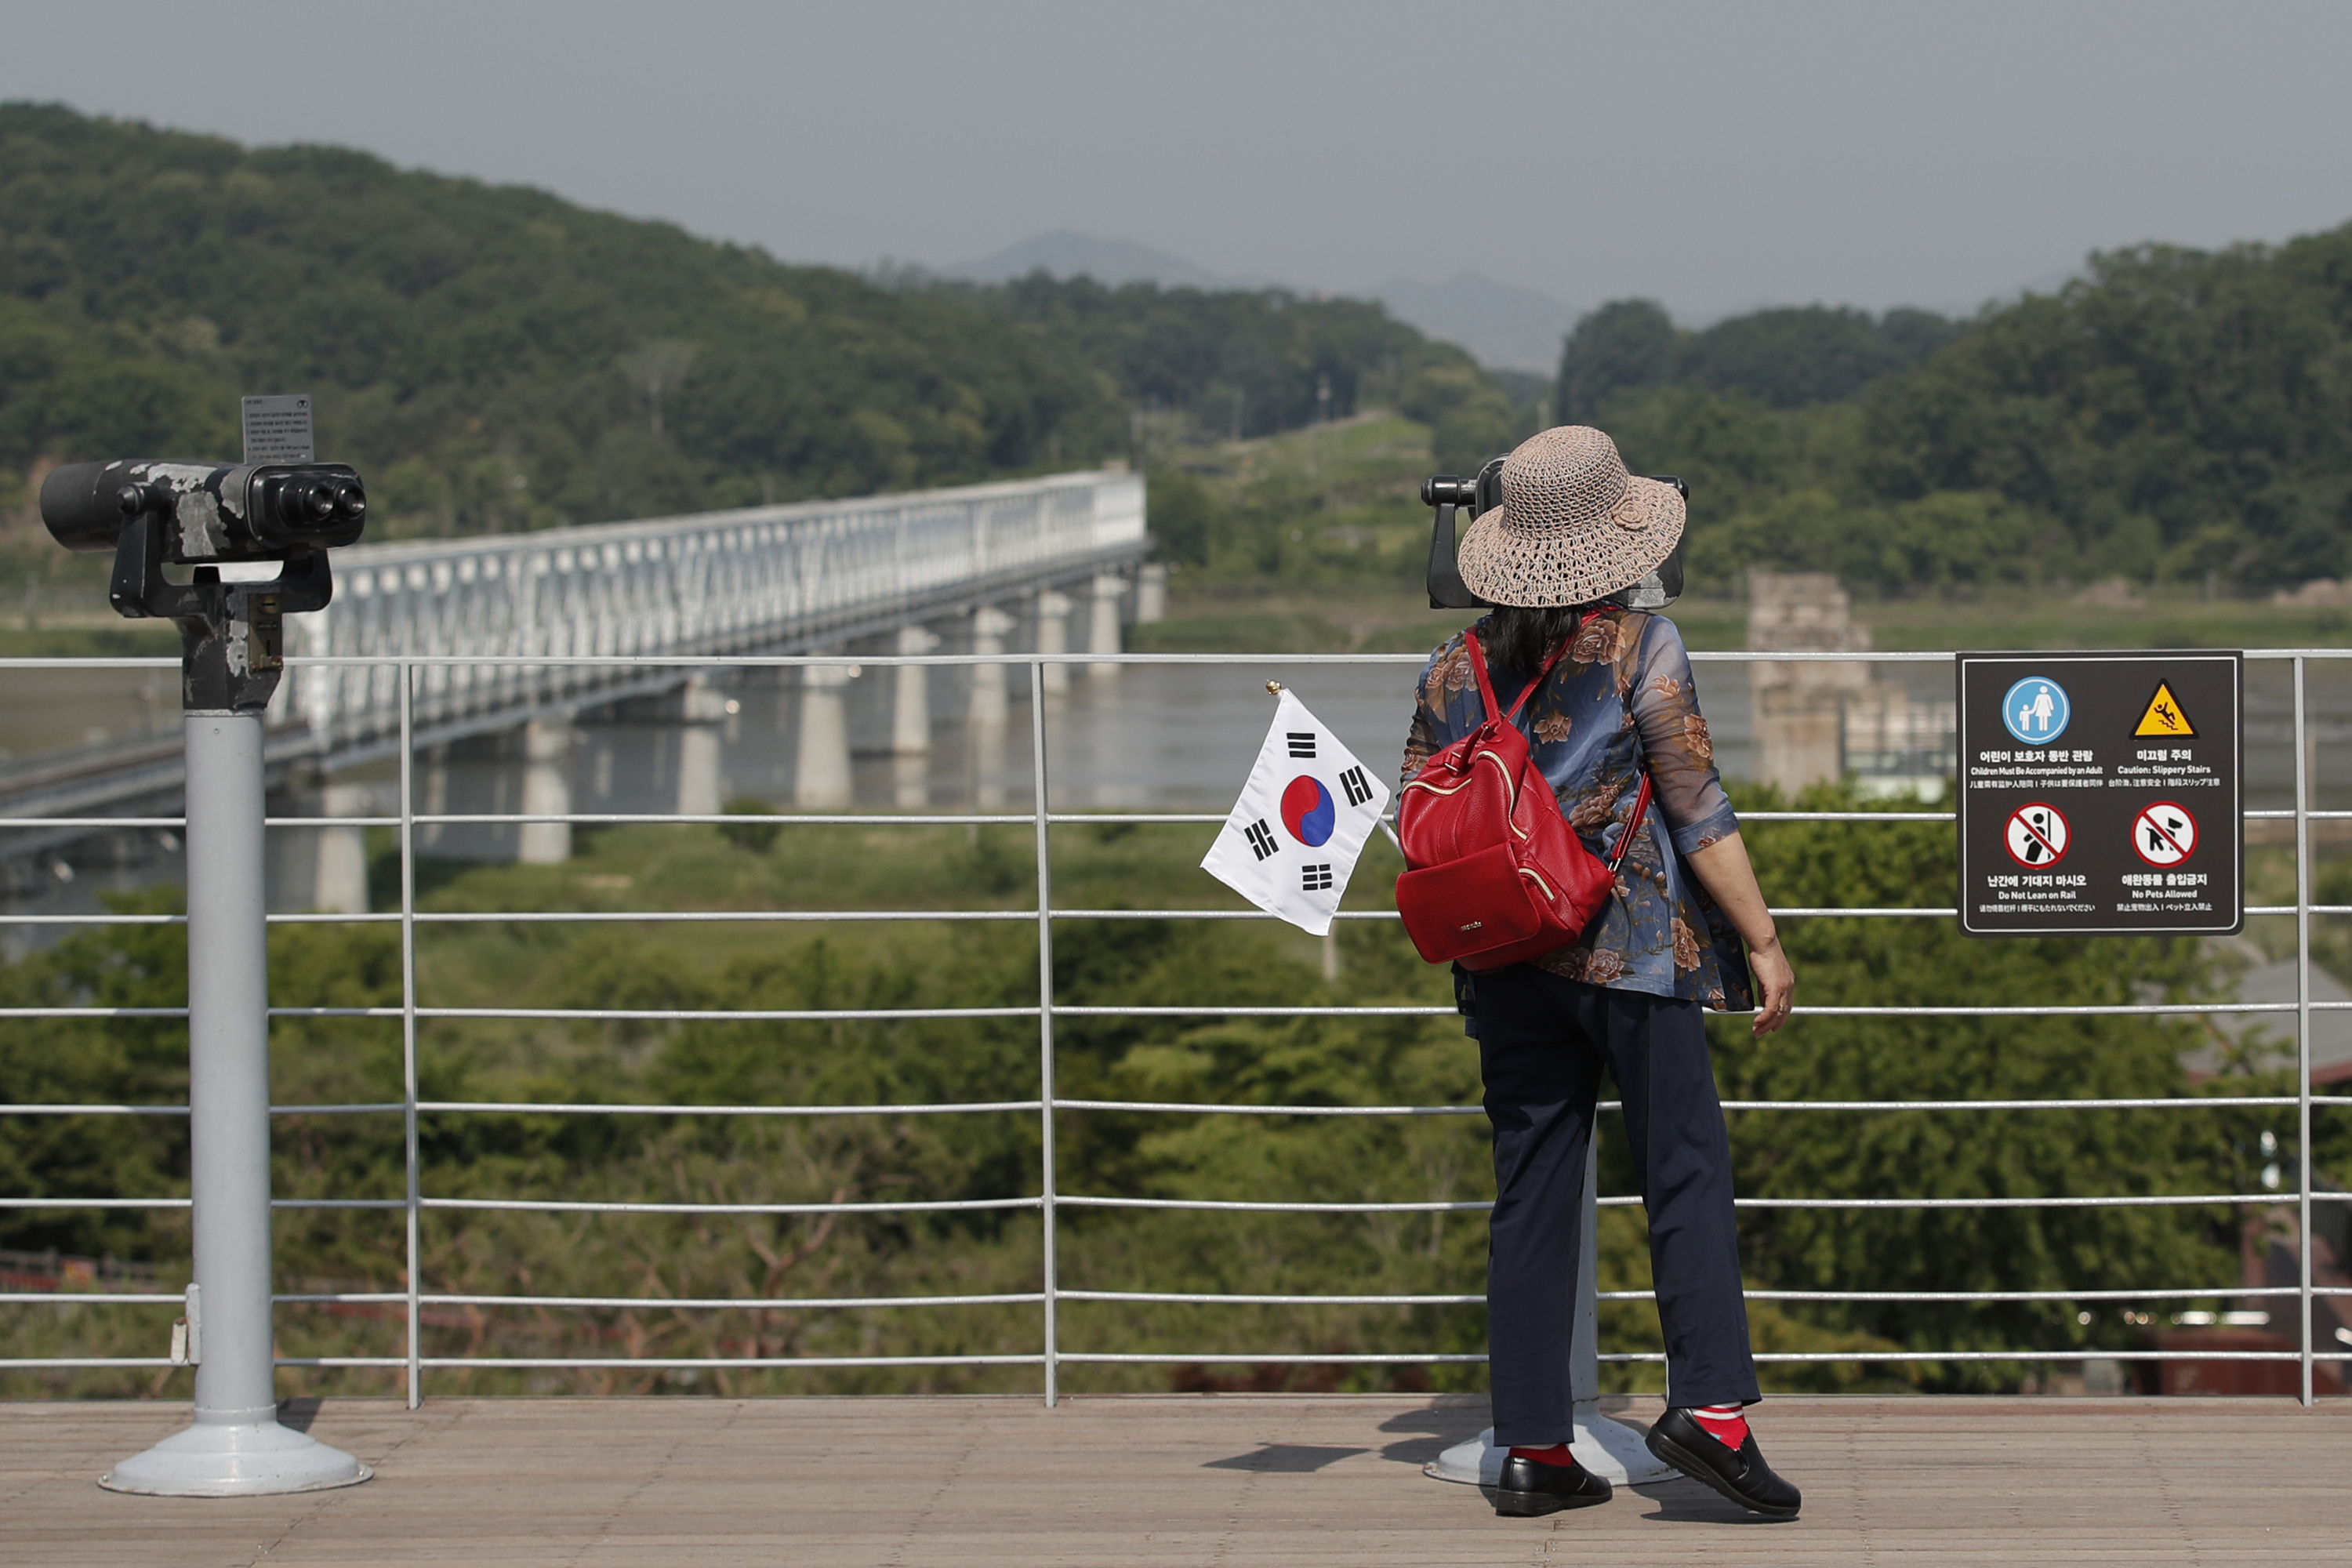 A visitor carrying a South Korean flag uses binoculars to view the northern side at the Imjingak Pavilion in Paju, South Korea, Tuesday, June 9, 2020. Photo: AP